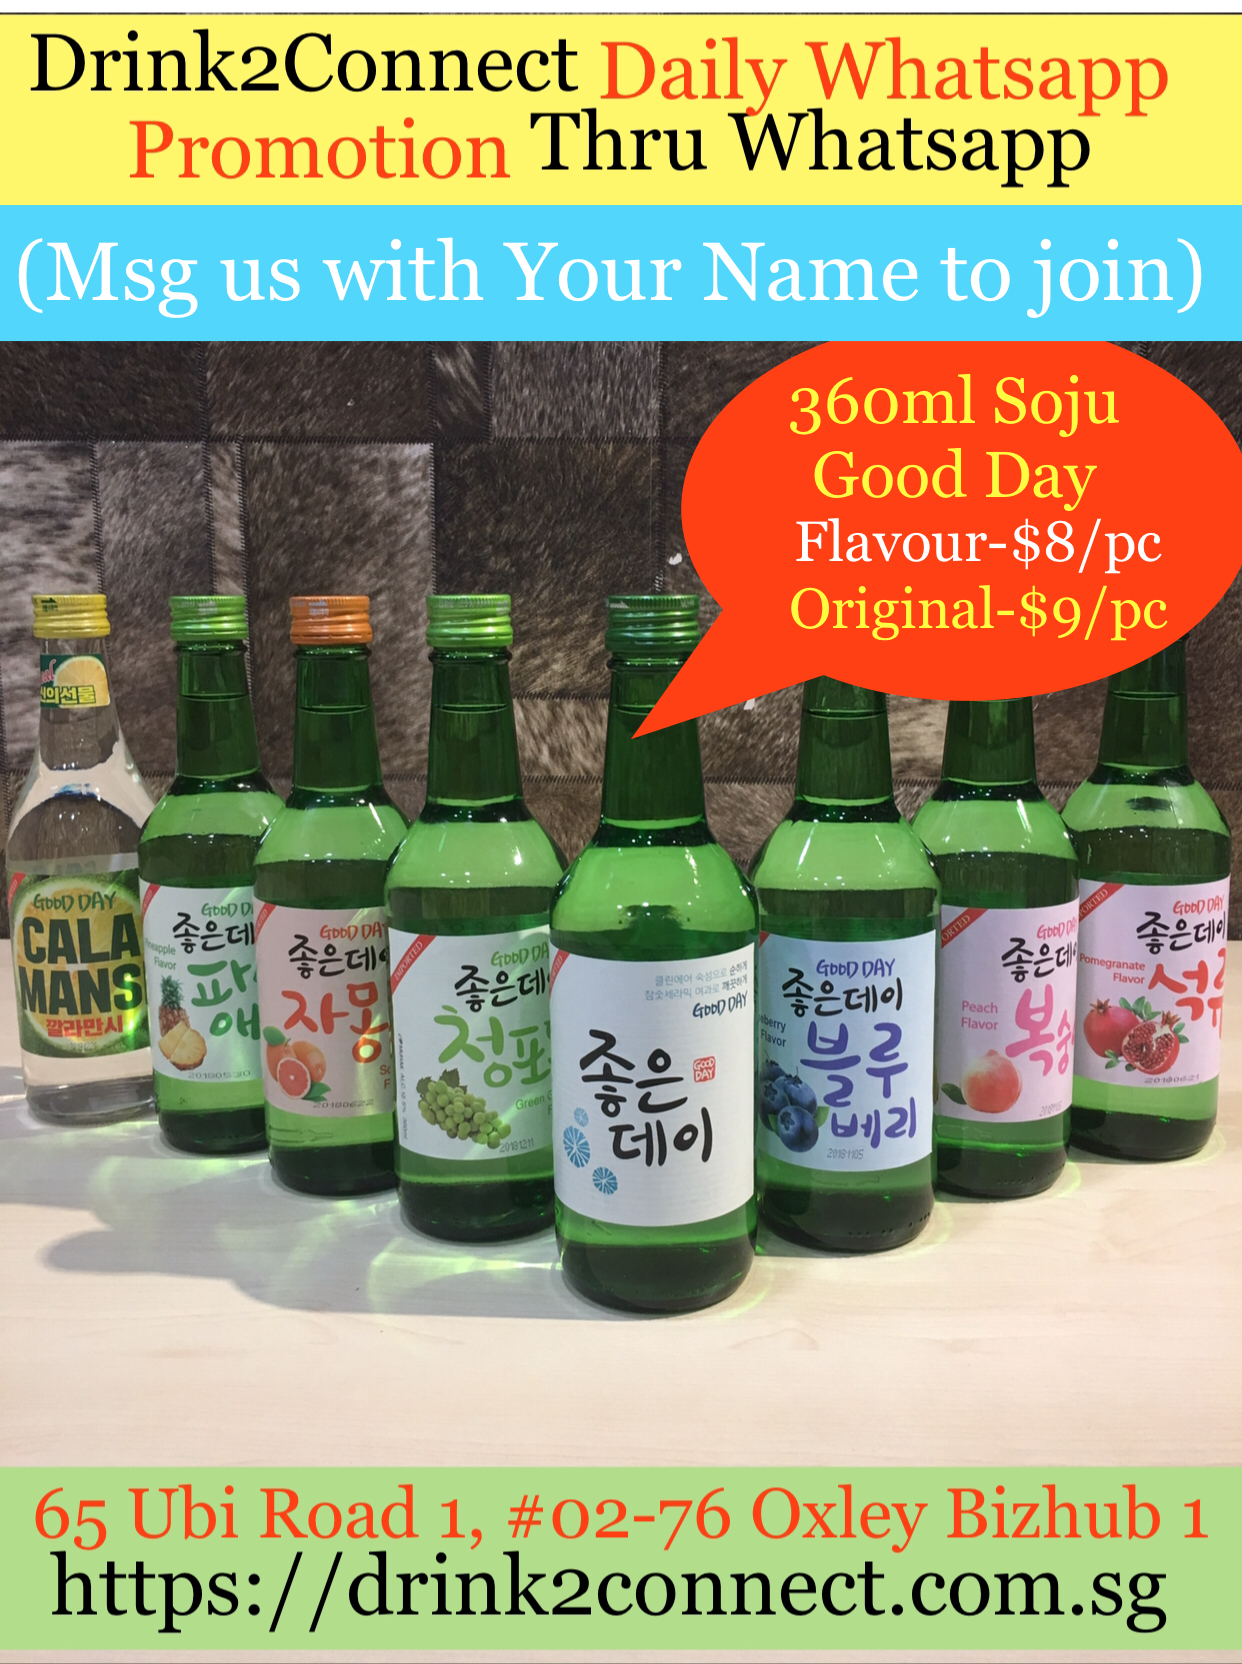 Korean Gooday Soju, Goodday Flavour Soju 360ml